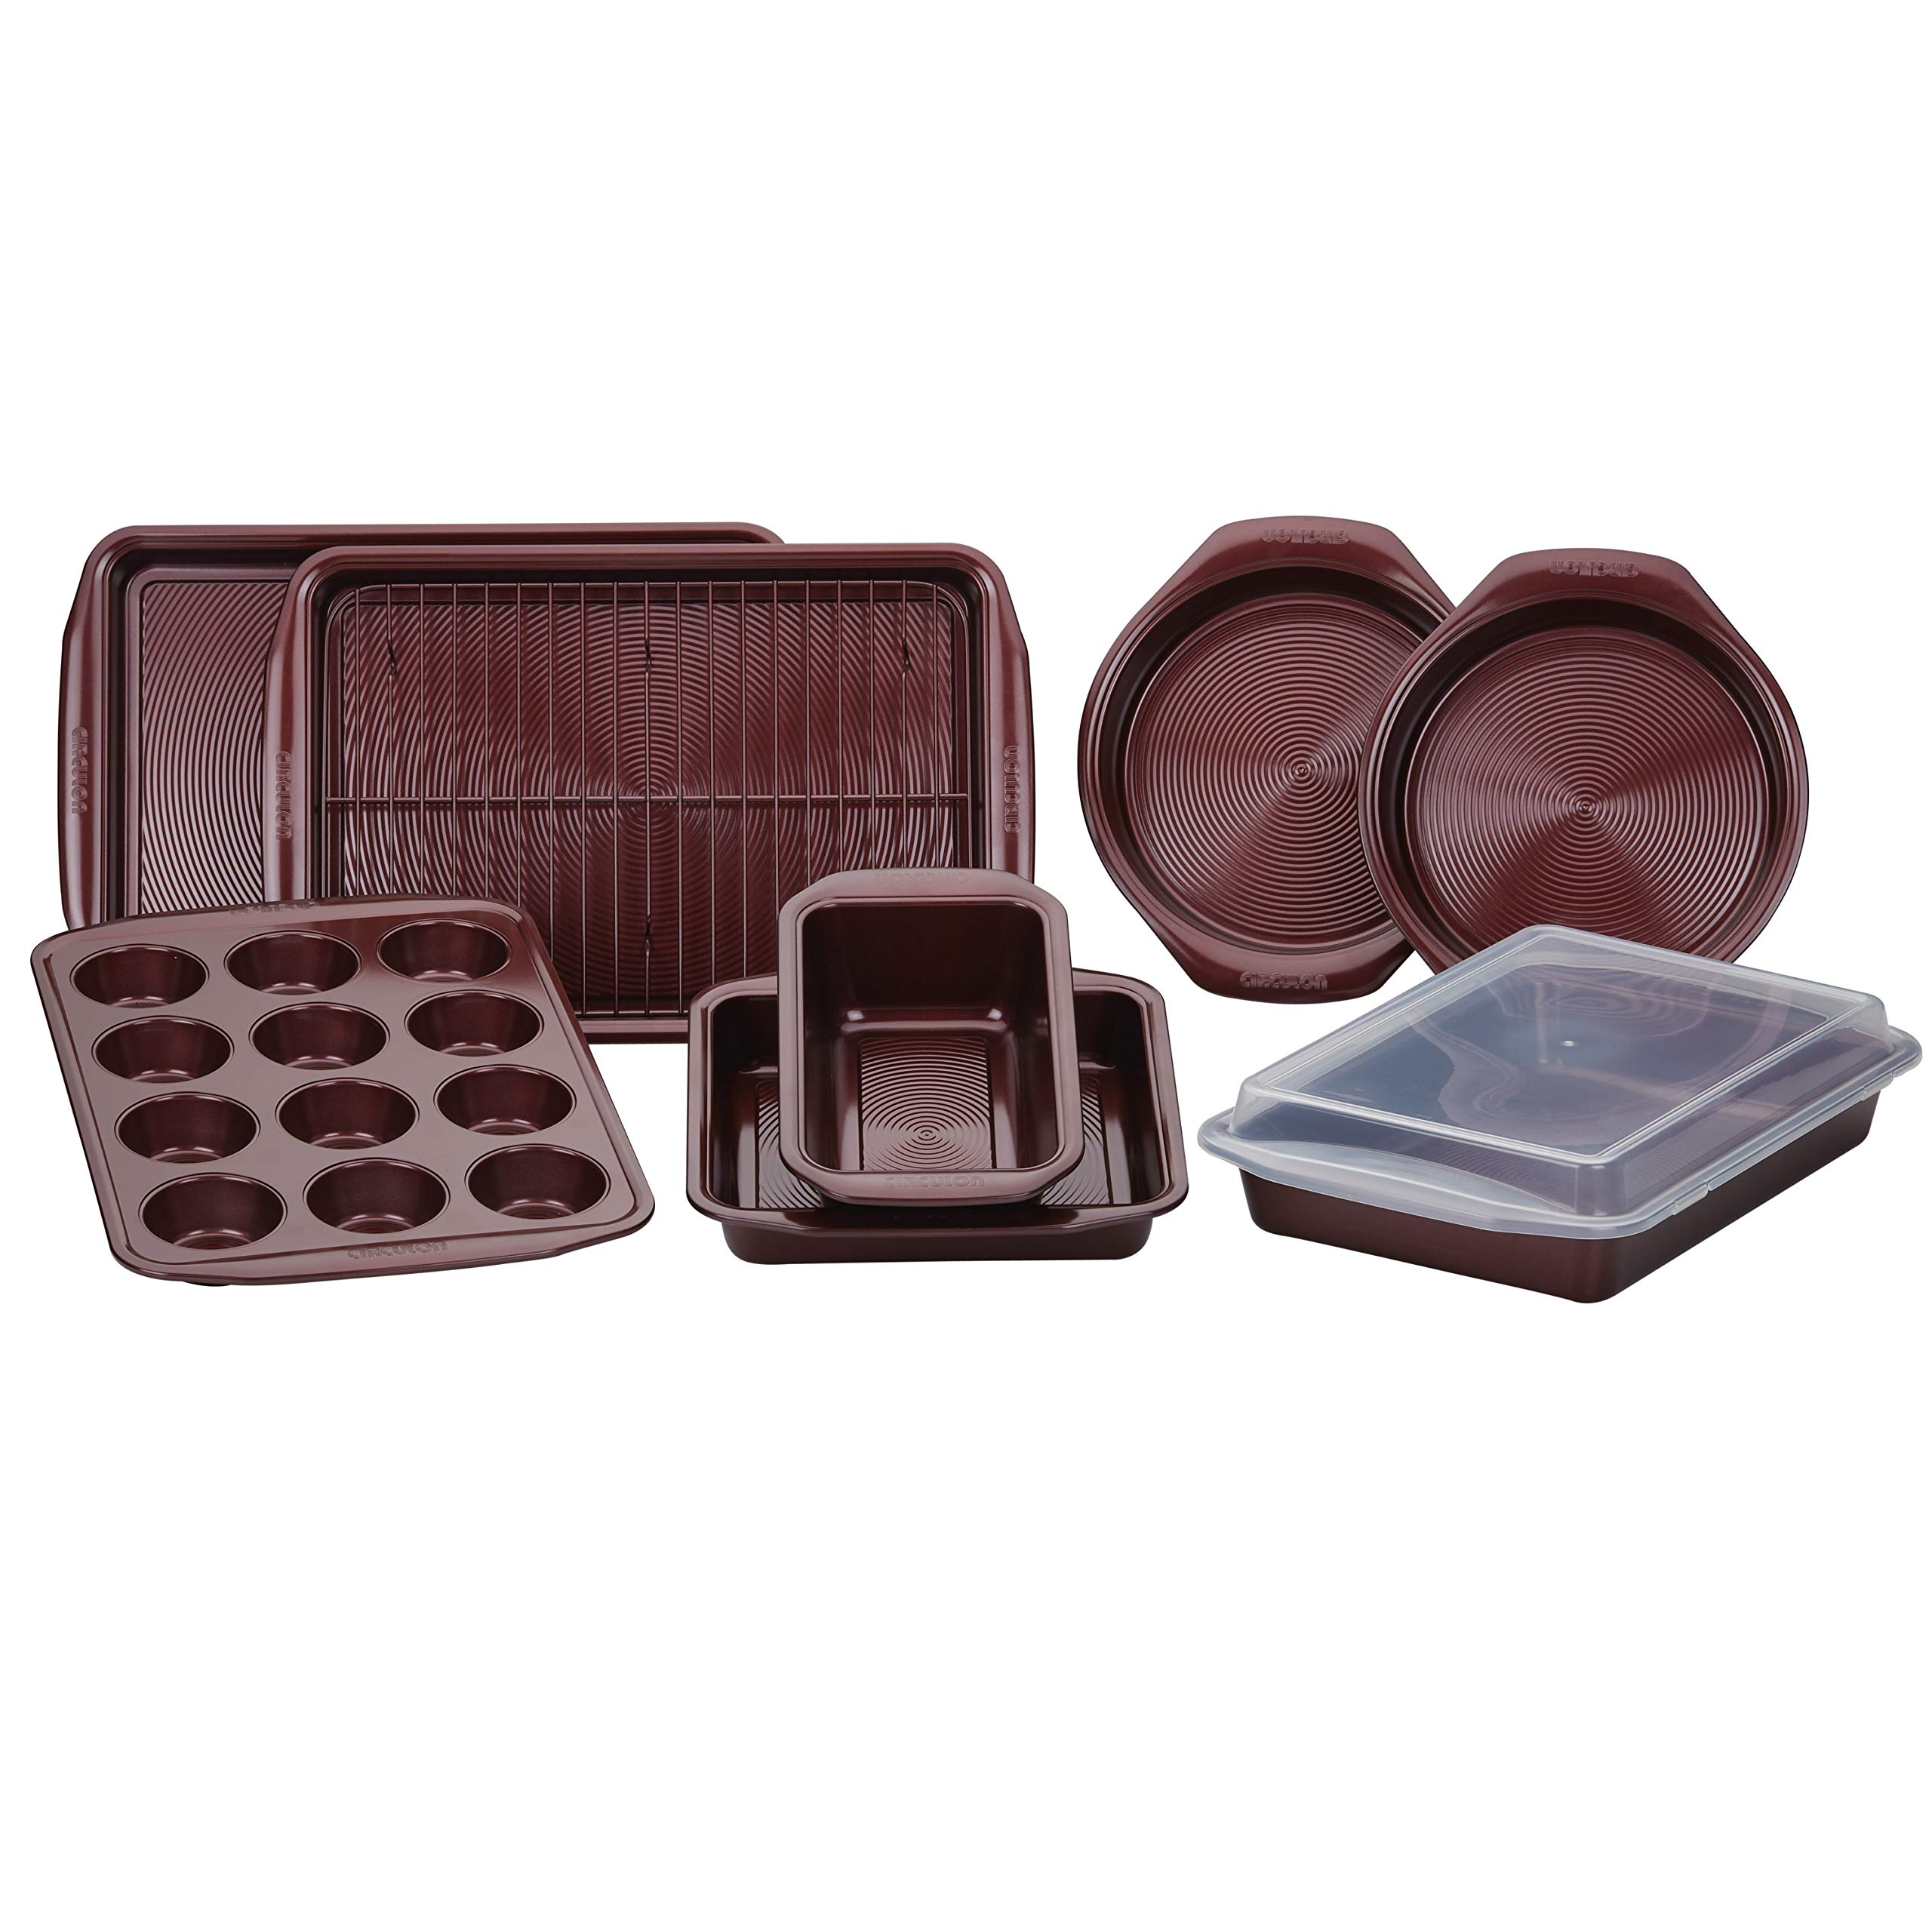 Circulon 47740 10-Piece Steel Bakeware Set, Merlot by Circulon (Image #11)